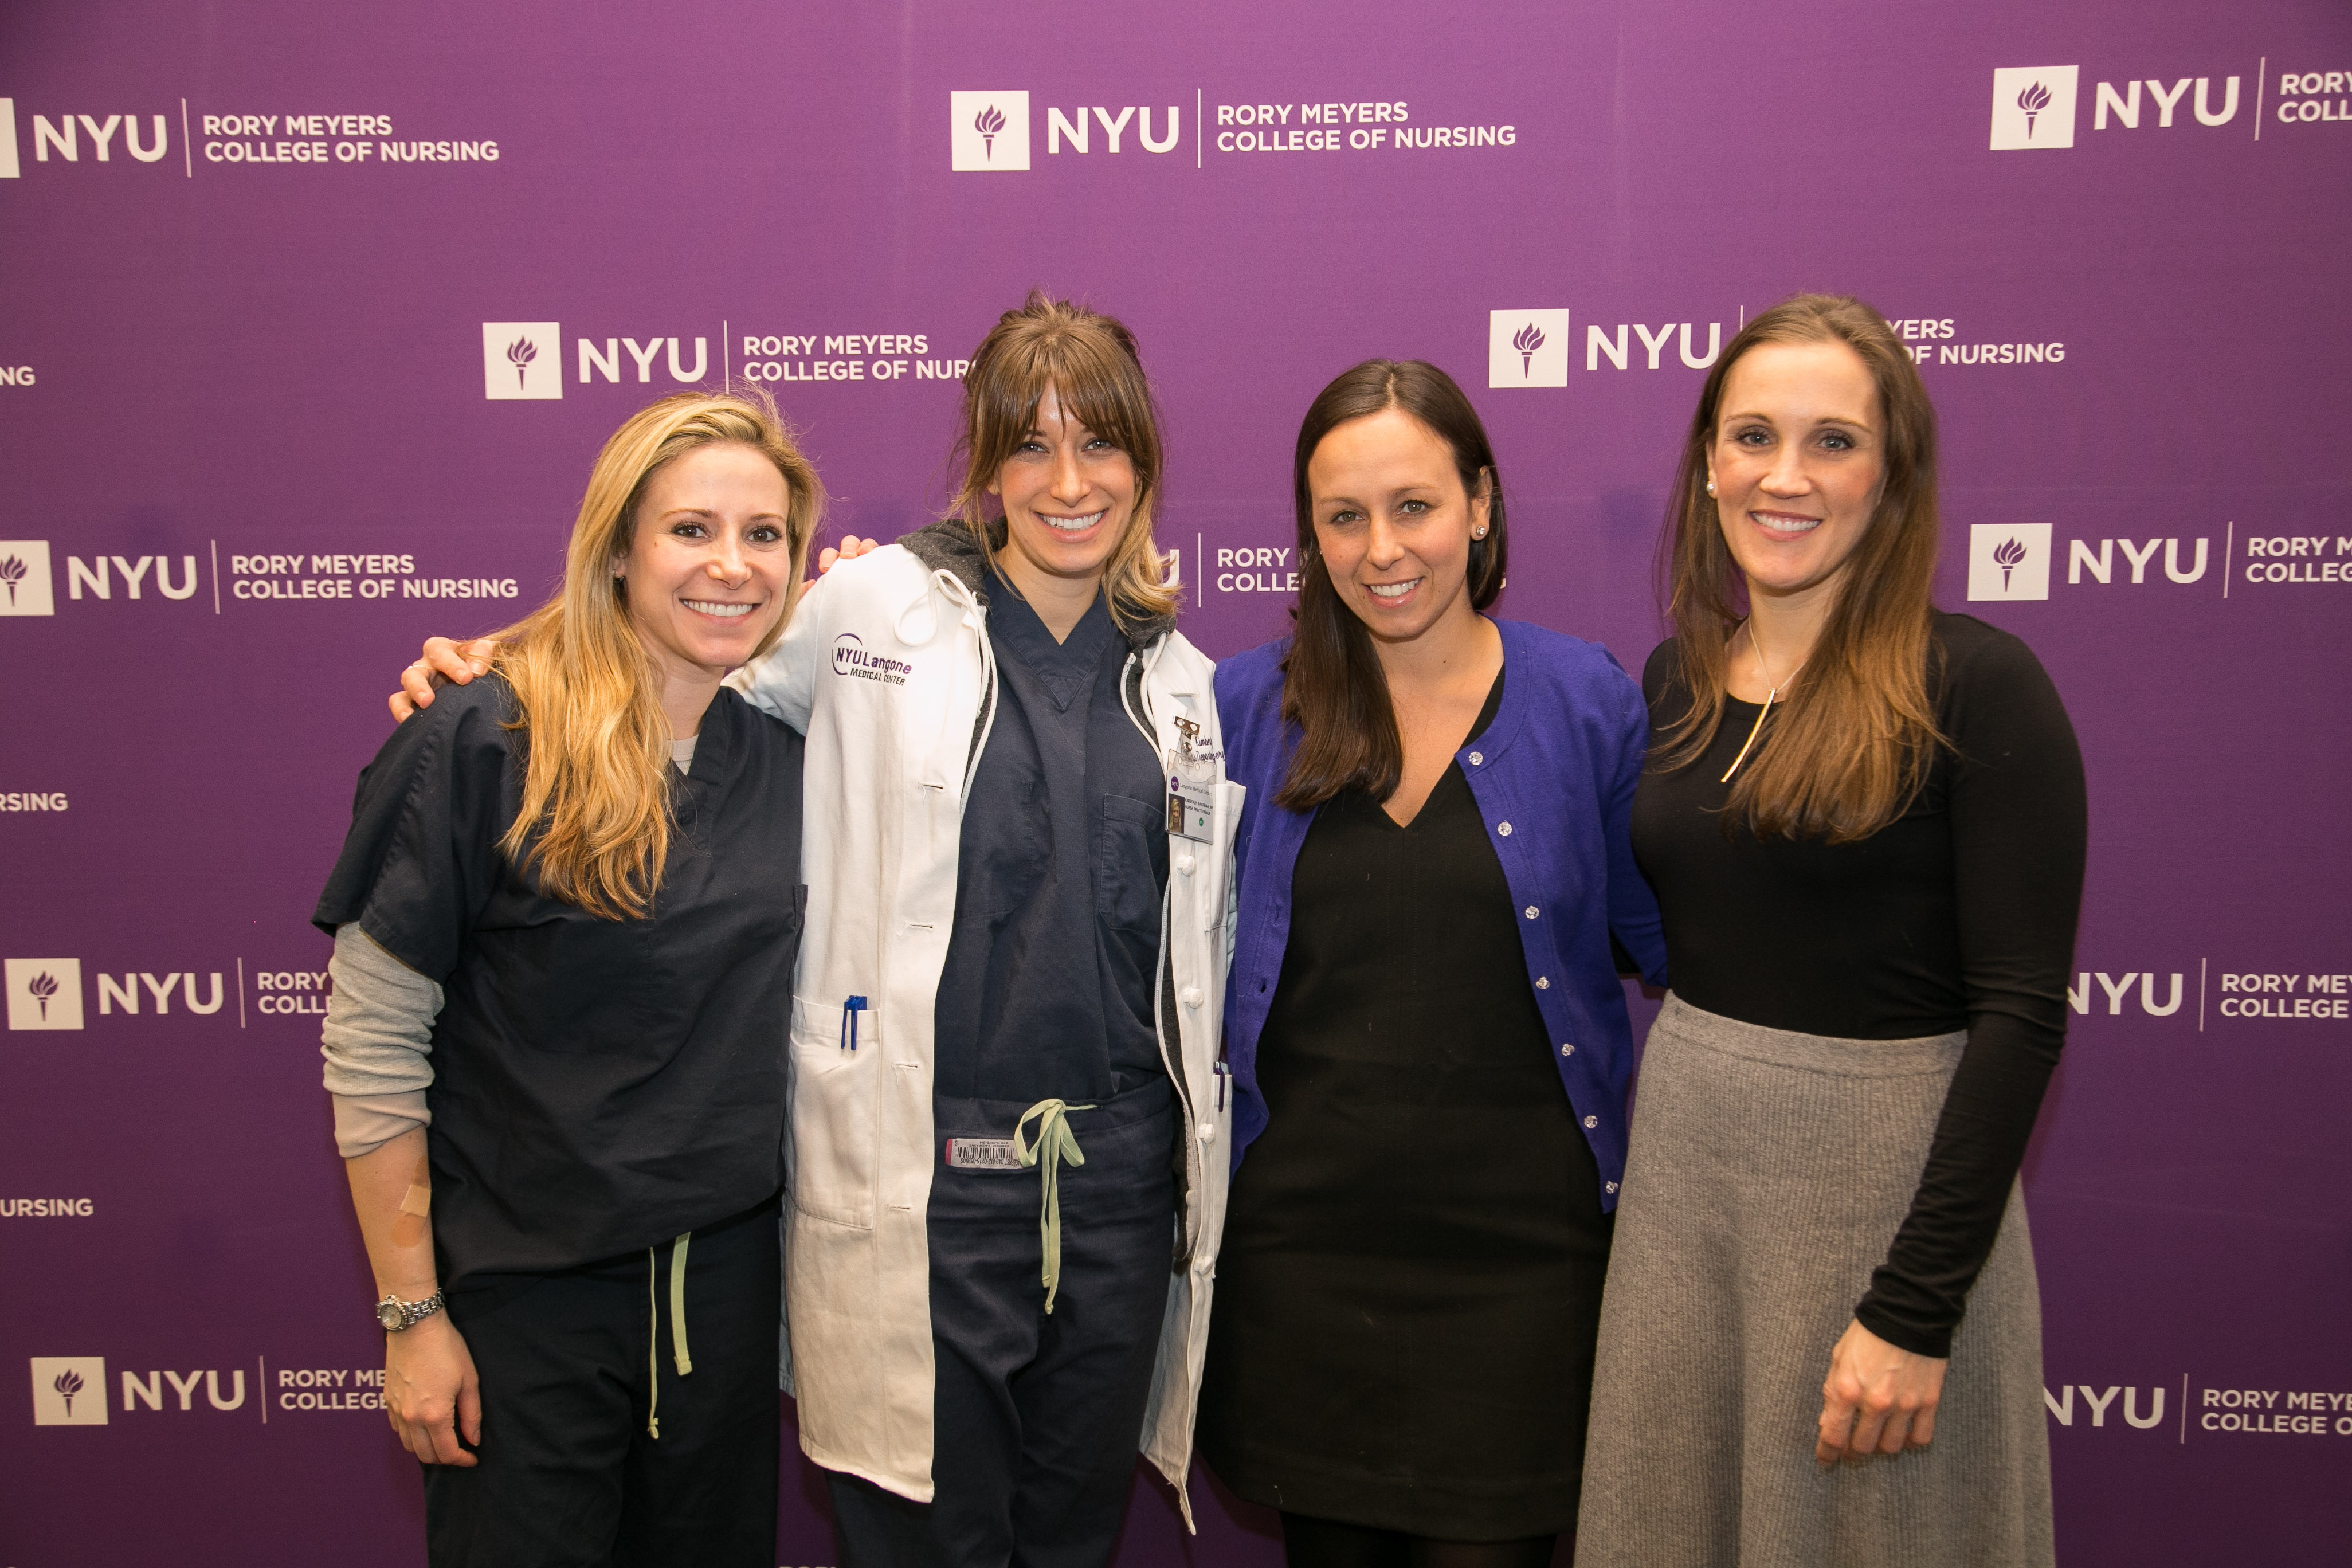 NYU Meyers Alumni at networking event